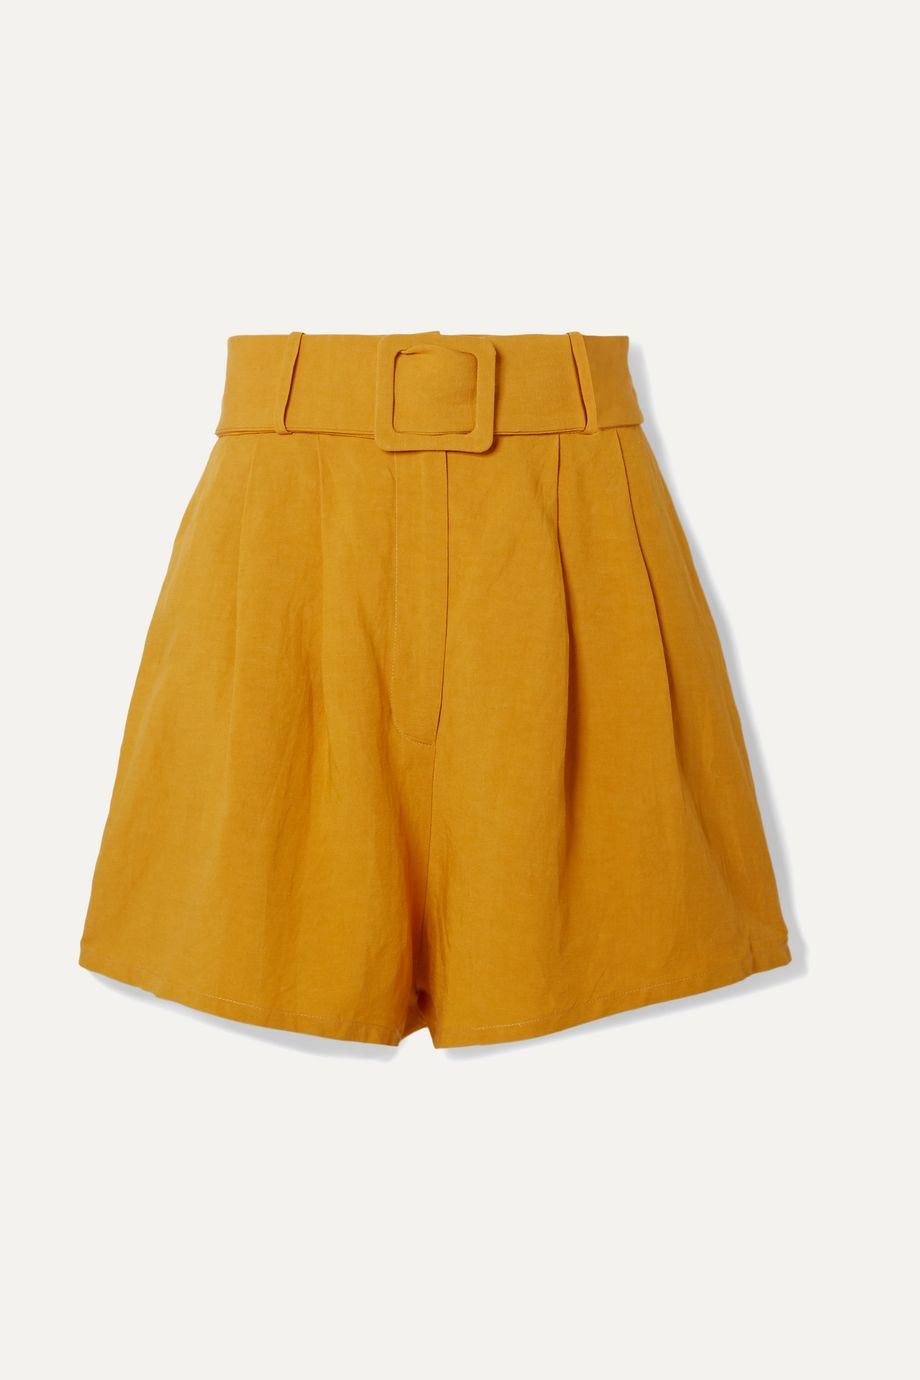 Adriana Degreas Belted pleated linen shorts